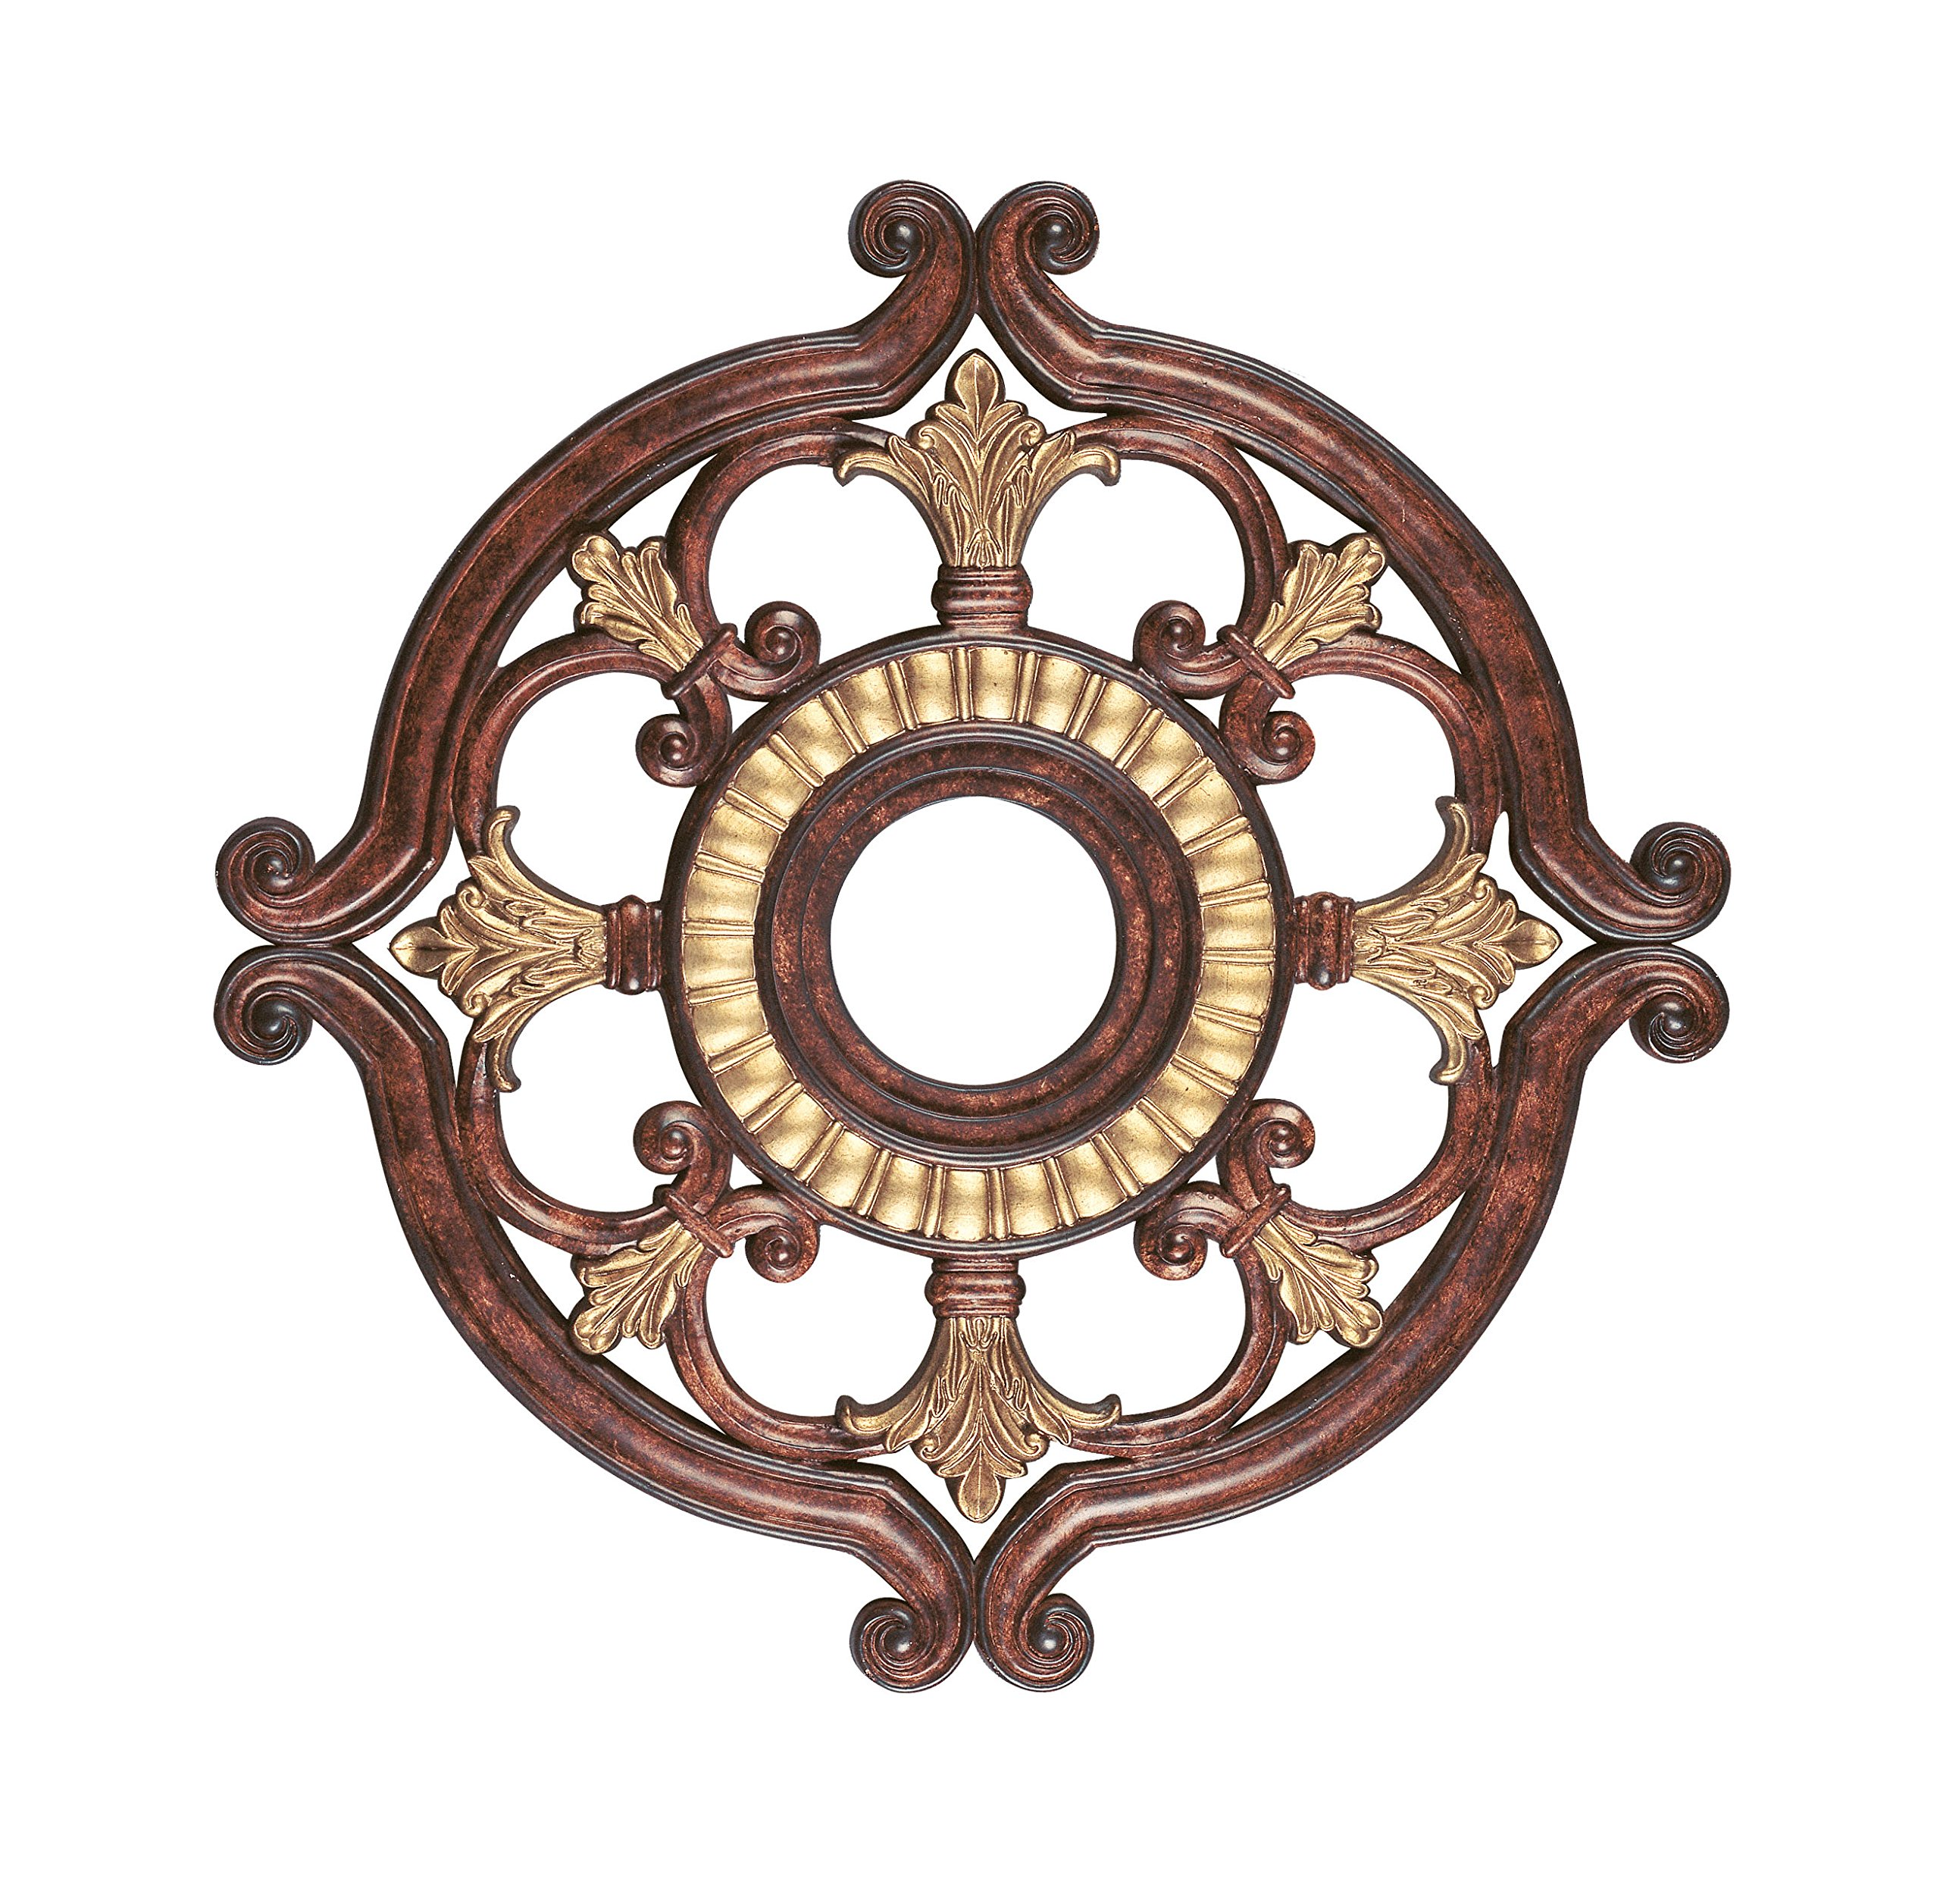 Livex Lighting 8216-63 Ceiling Medallion in Verona Bronze with Aged Gold Leaf Accents by Livex Lighting